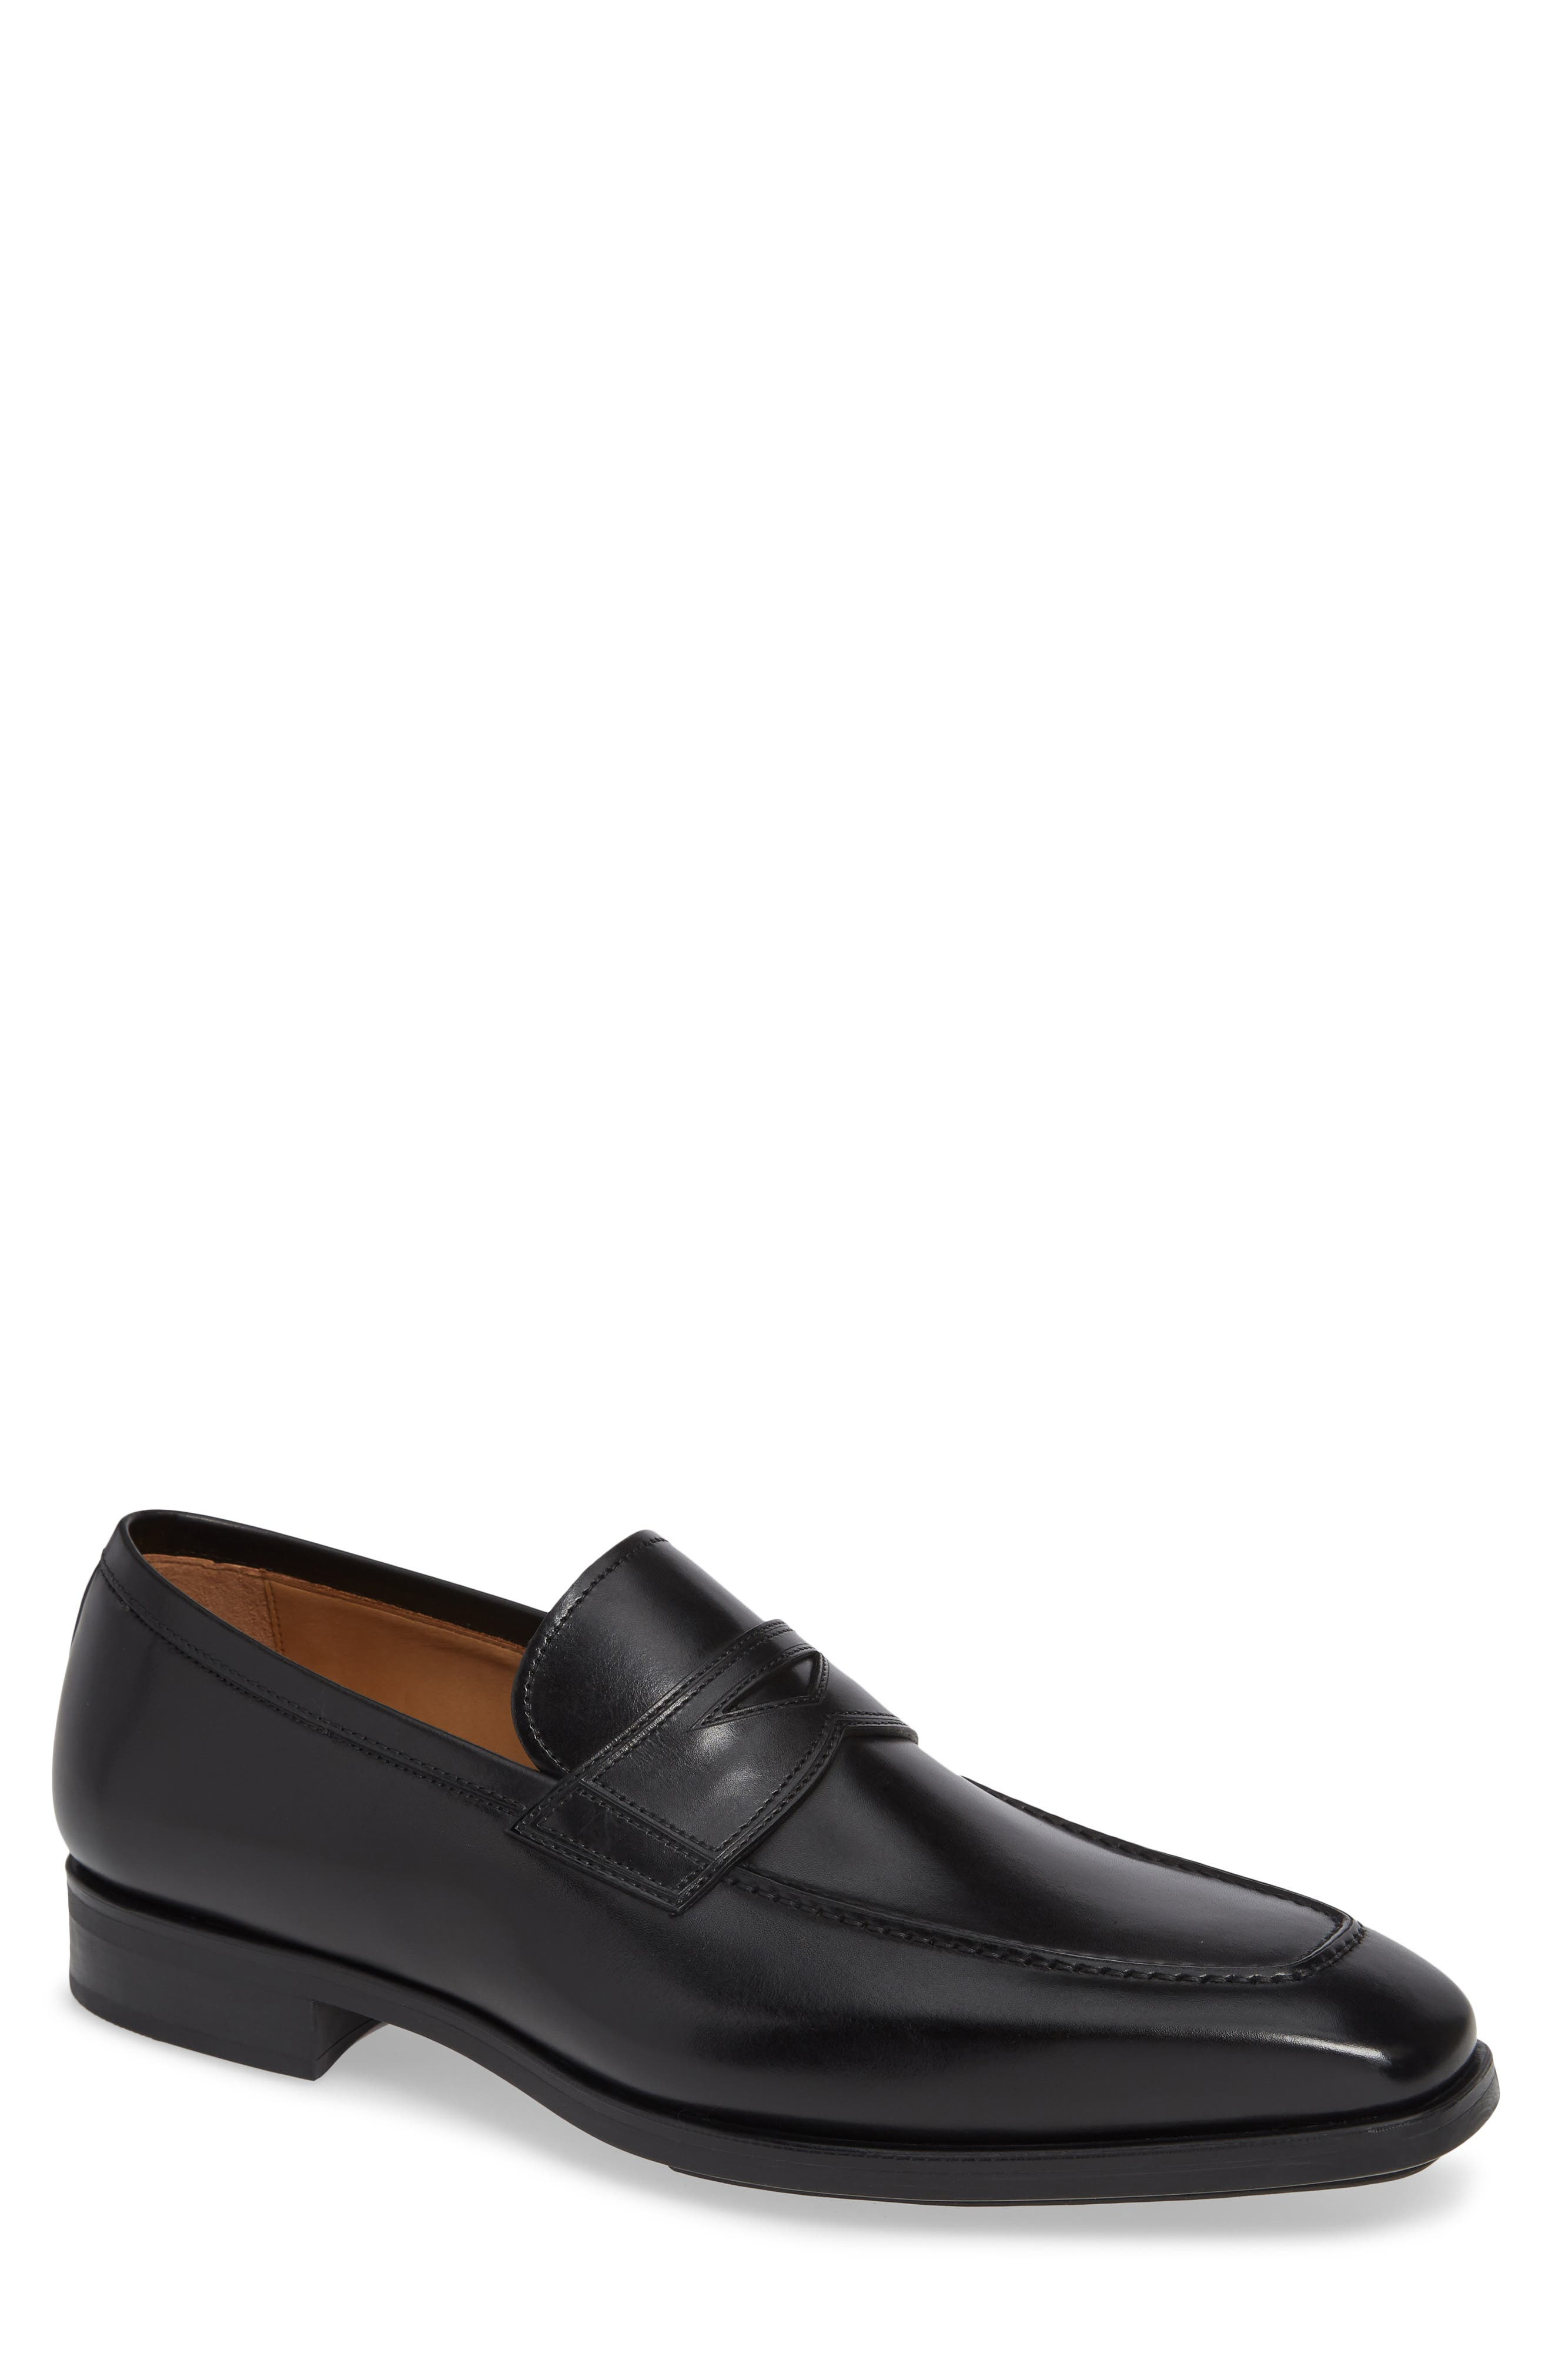 Ramon Penny Loafer,                             Main thumbnail 1, color,                             001